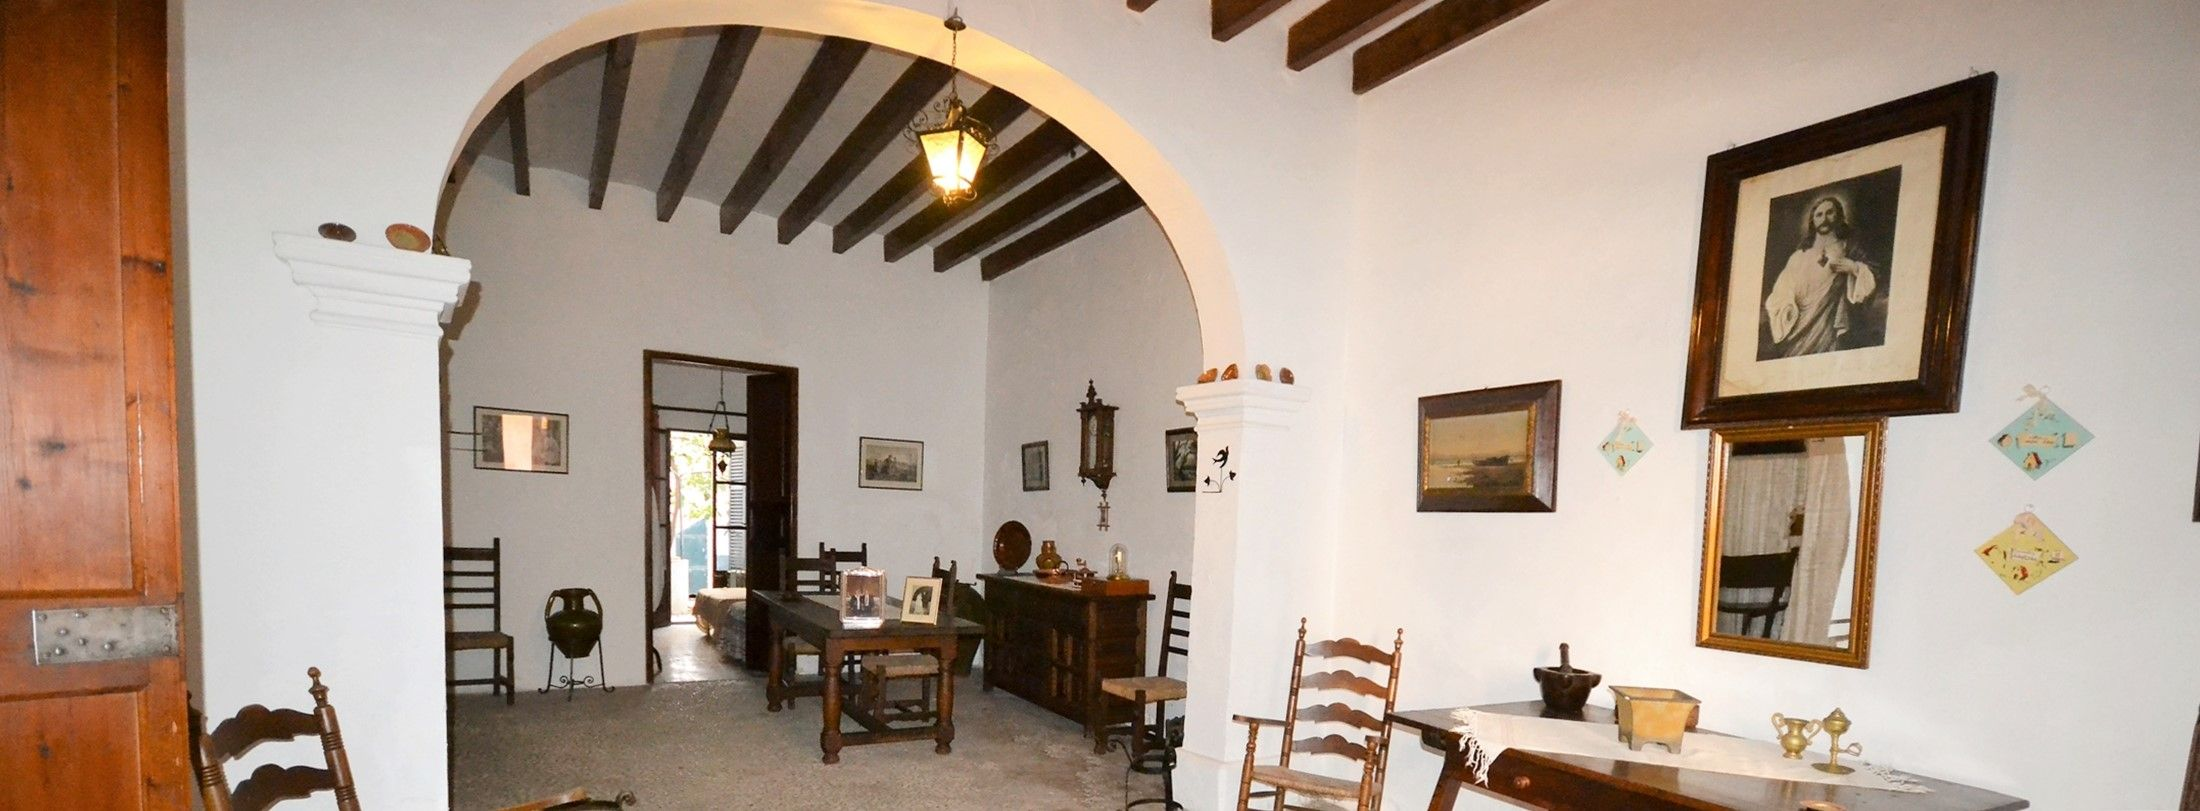 POLLENSA TRADITIONAL TOWNHOUSE WITH CHARACTER with HISTORY .